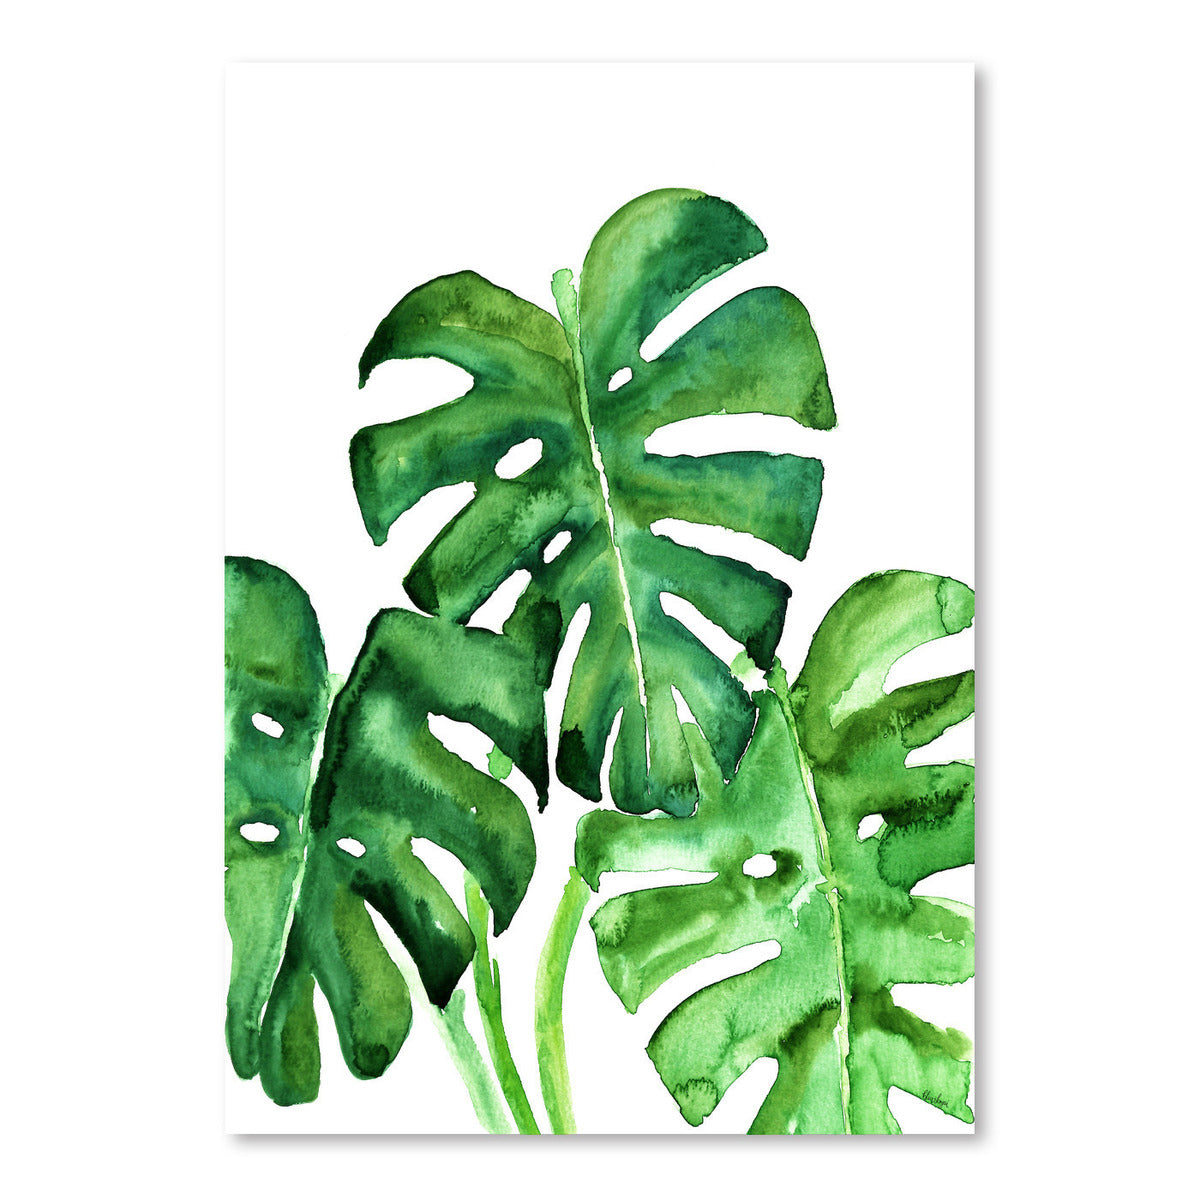 Monstera Leaves by Blursbyai - Art Print - Americanflat